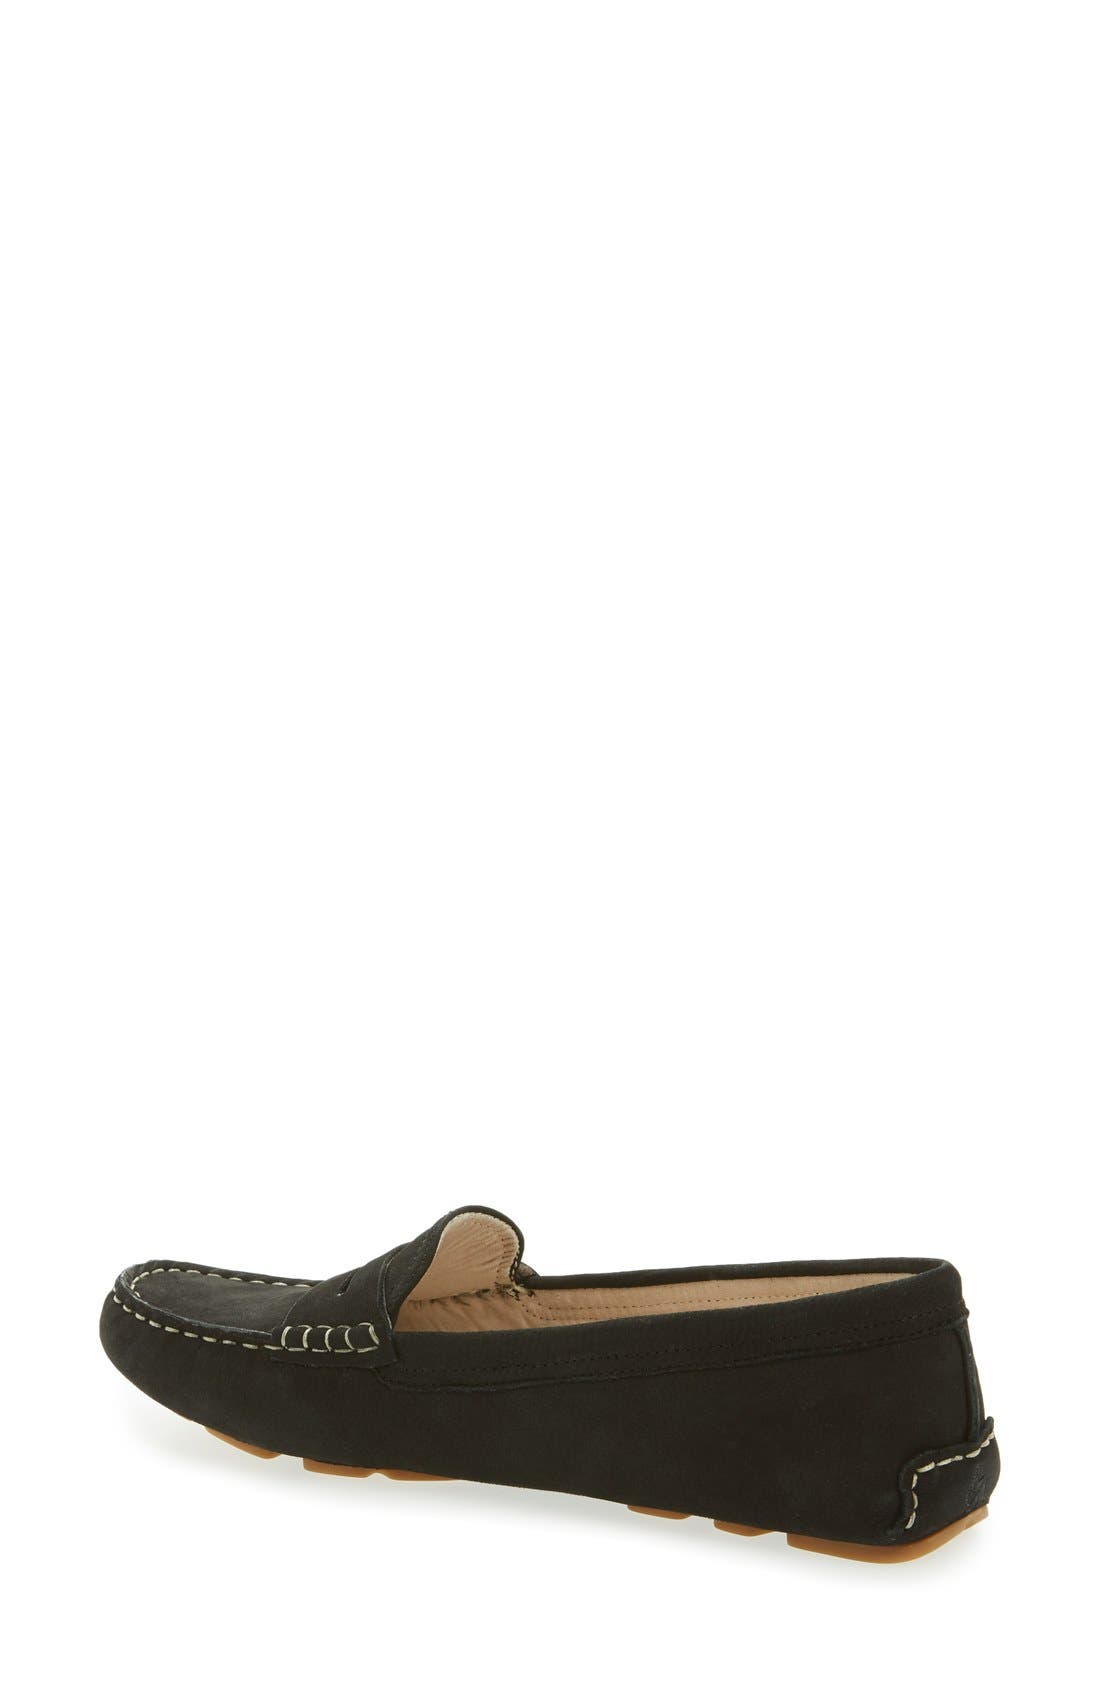 Filly Moc Toe Loafer,                             Alternate thumbnail 5, color,                             001